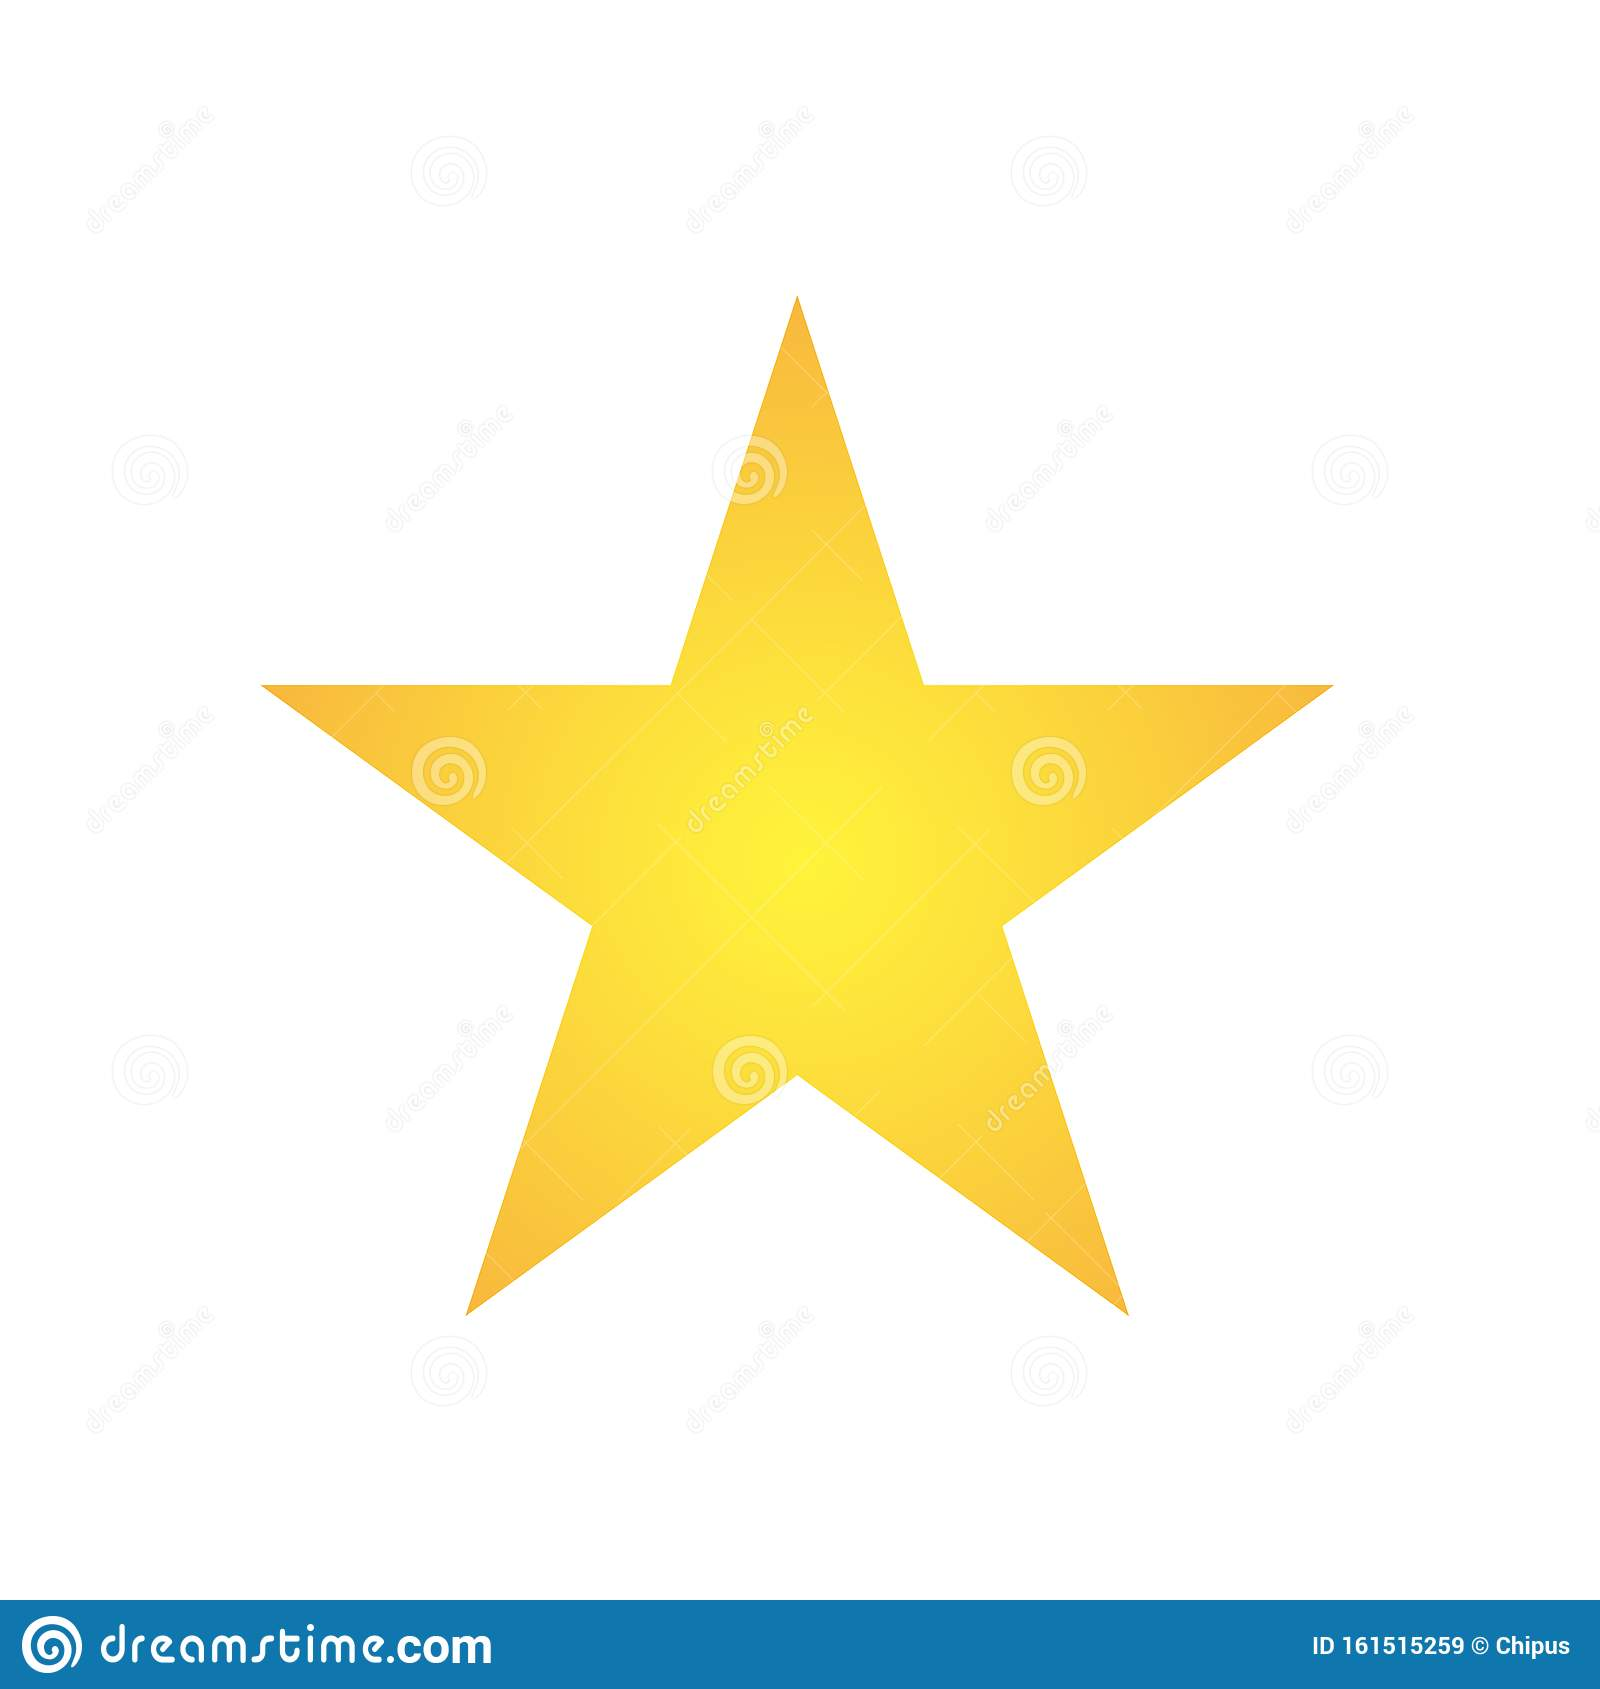 Simple Five Corners Star Yellow Golden Color Star Shape